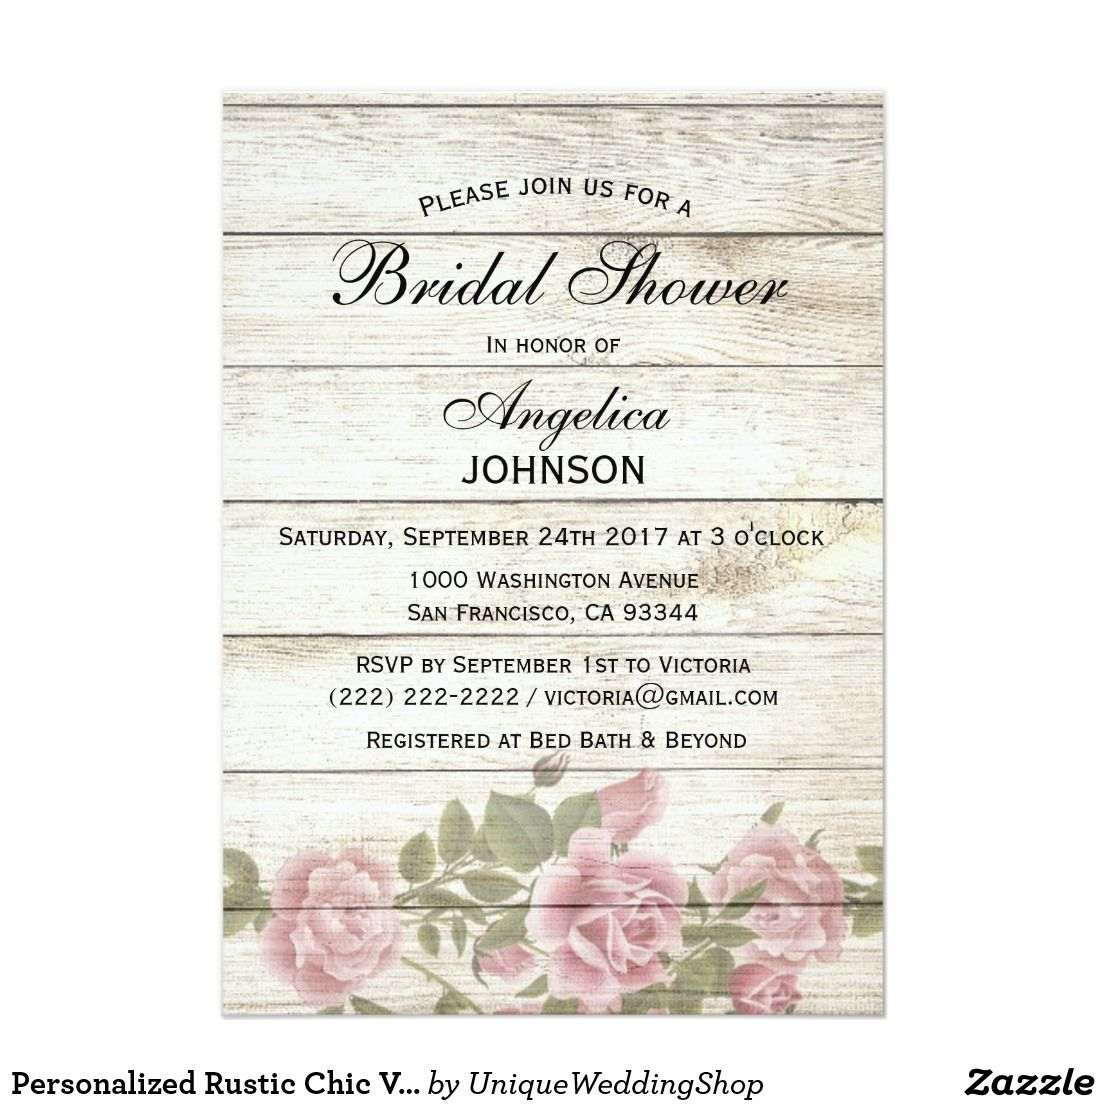 Personalized Rustic Chic Vintage Bridal Shower Invitation ...